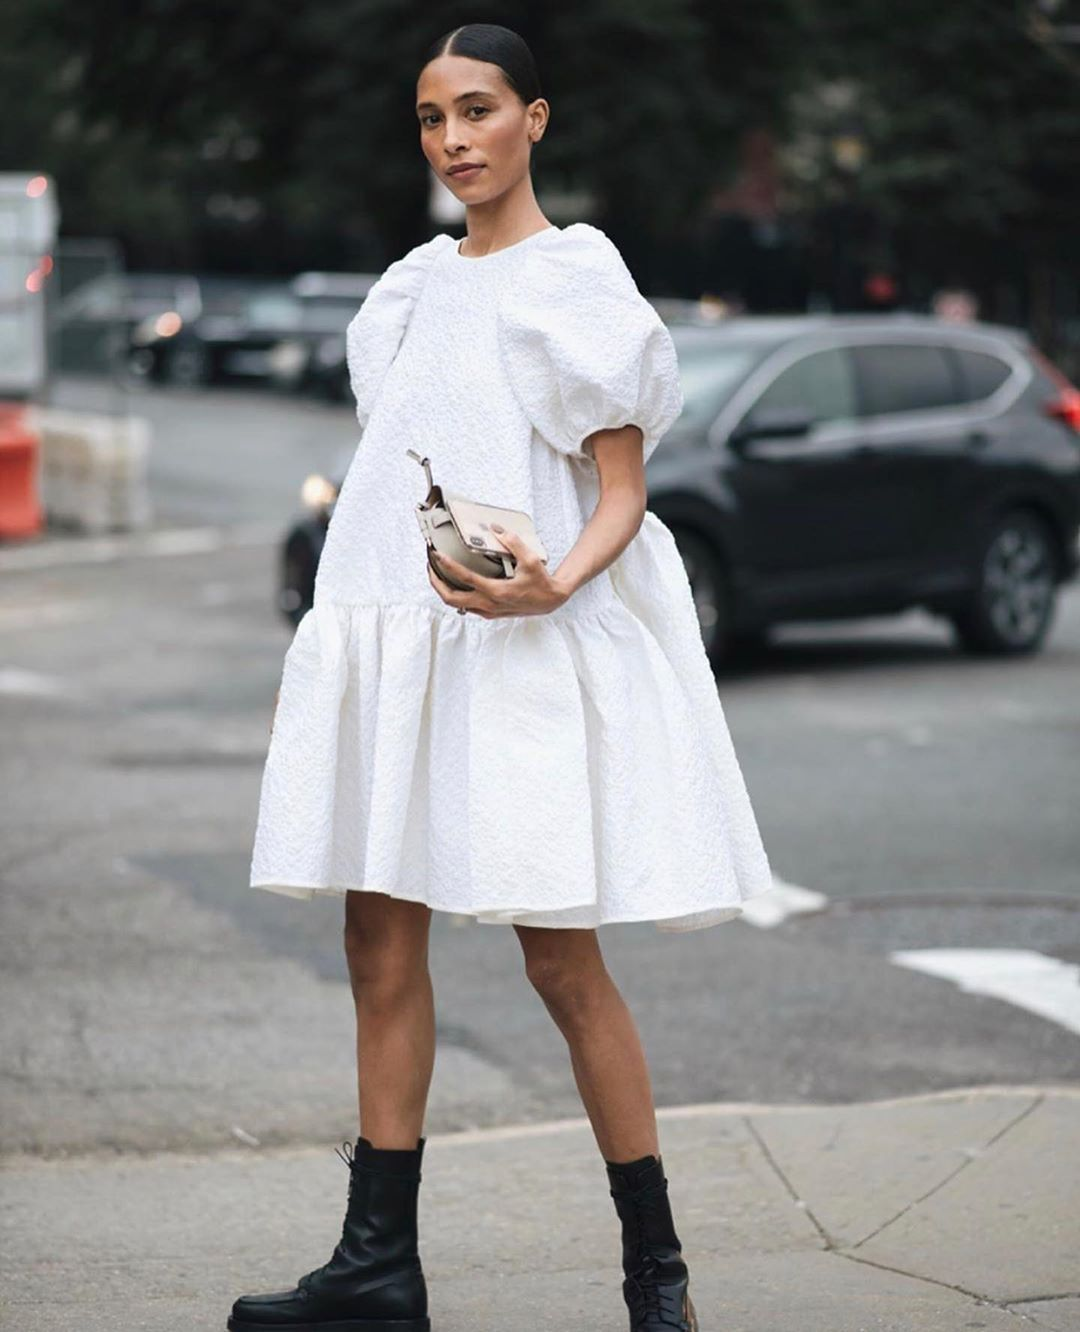 Tylynn Nyugen in a Cecilie Bahnsen puff-sleeve white dress with black combat boots